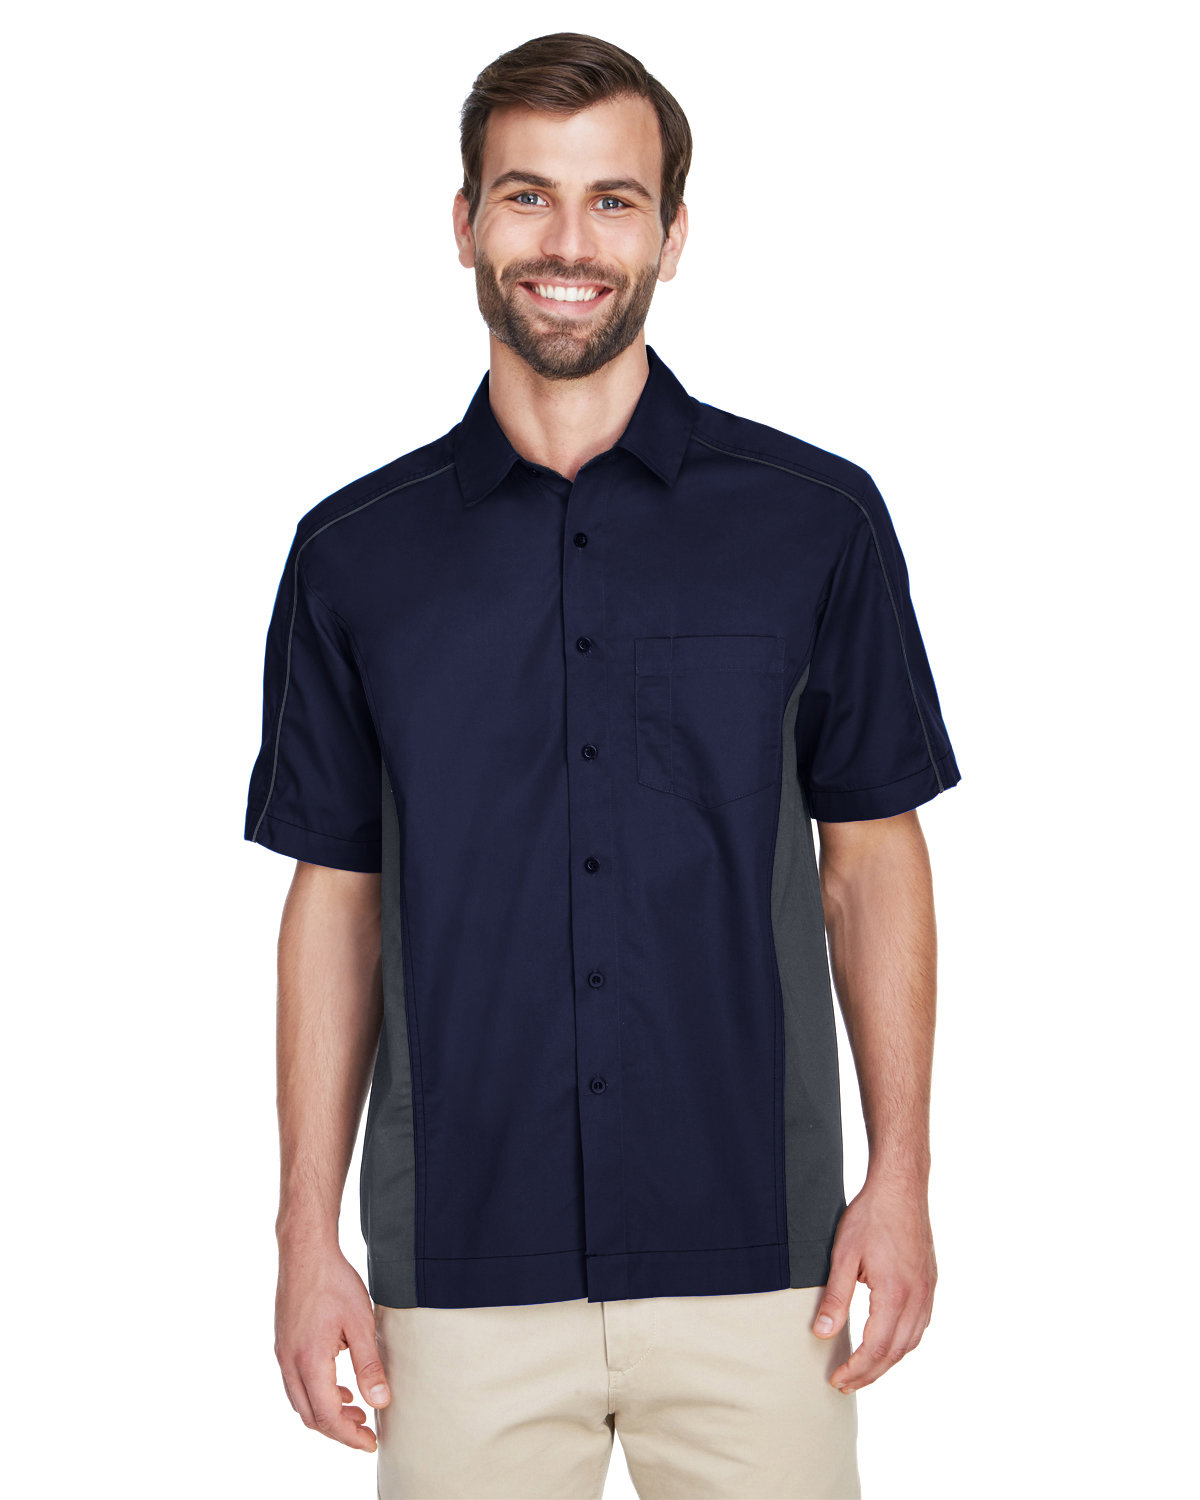 North End Men's Fuse Colorblock Twill Shirt CLASC NAVY/ CRBN